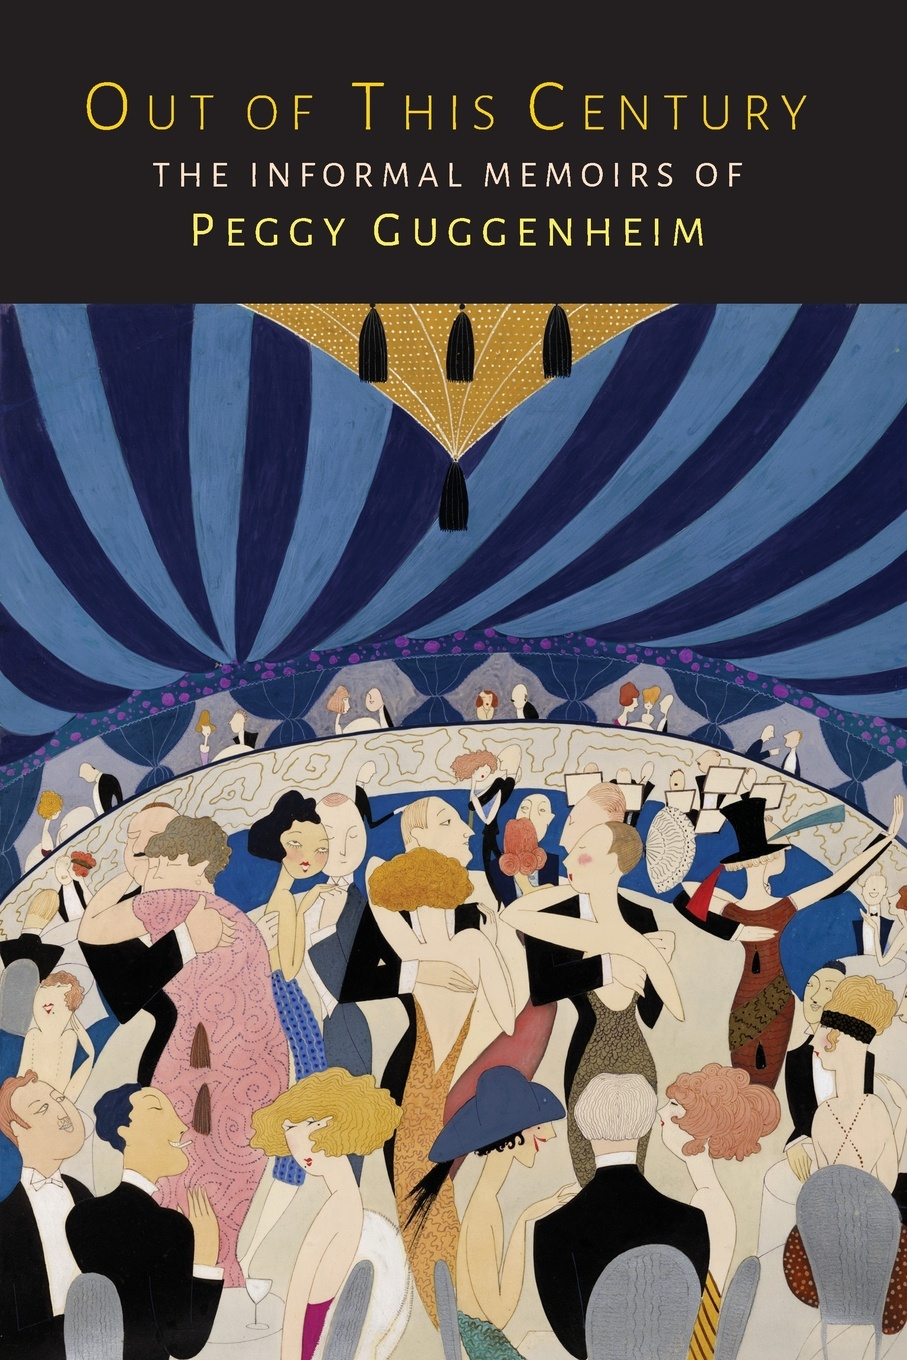 Peggy Guggenheim Out of This Century. The Informal Memoirs of Peggy Guggenheim peggy guggenheim out of this century the informal memoirs of peggy guggenheim